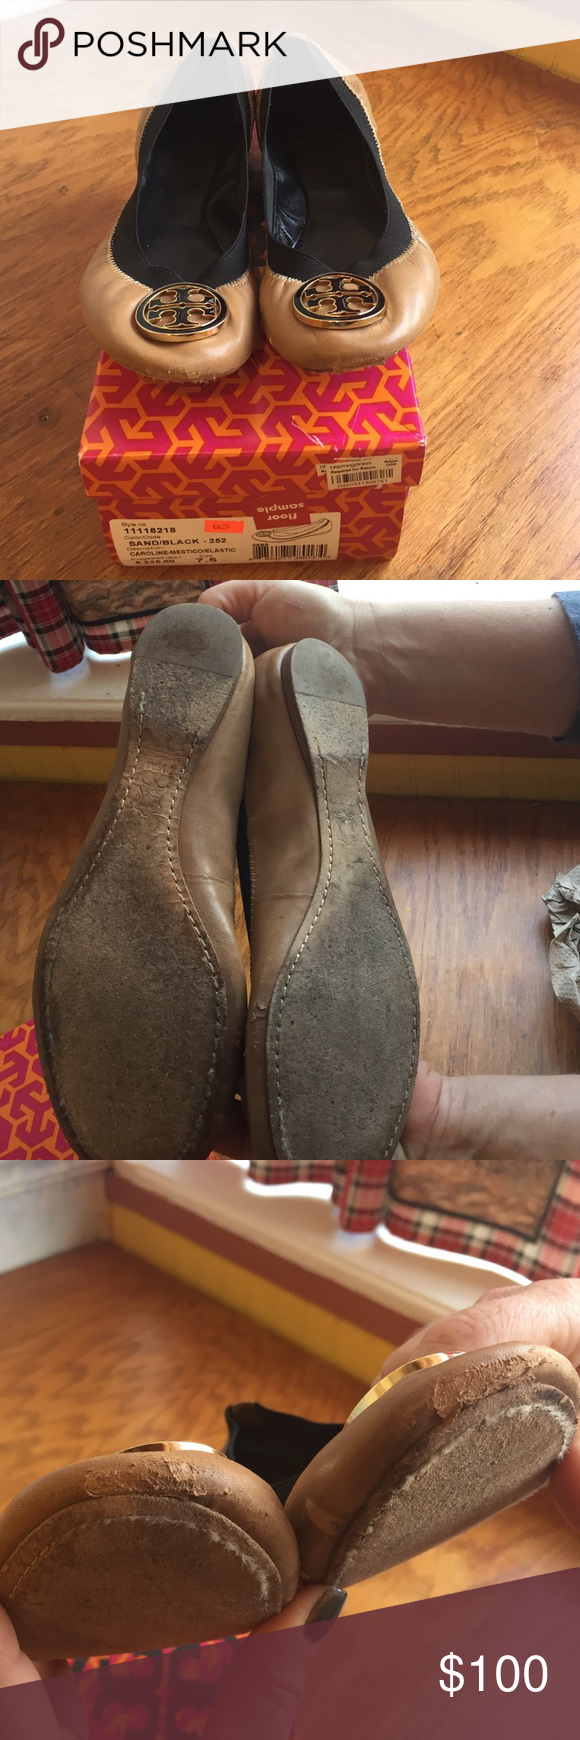 Tory Burch Caroline-Mestico/Elastic These Tory Burch Flats are super comfortable.  They have been worn a lot and are broken in; however they are in good condition. There is scuffing by the toes Tory Burch Shoes Flats & Loafers